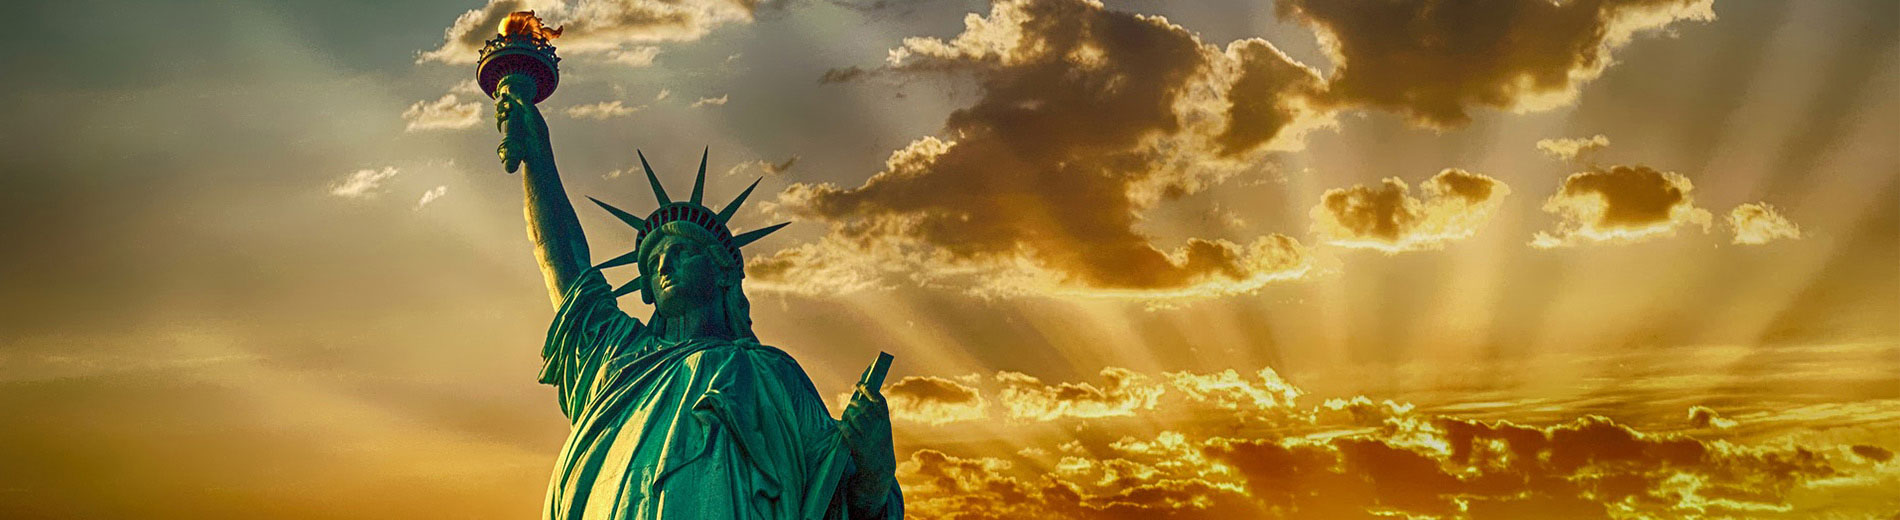 stock image of statue of liberty